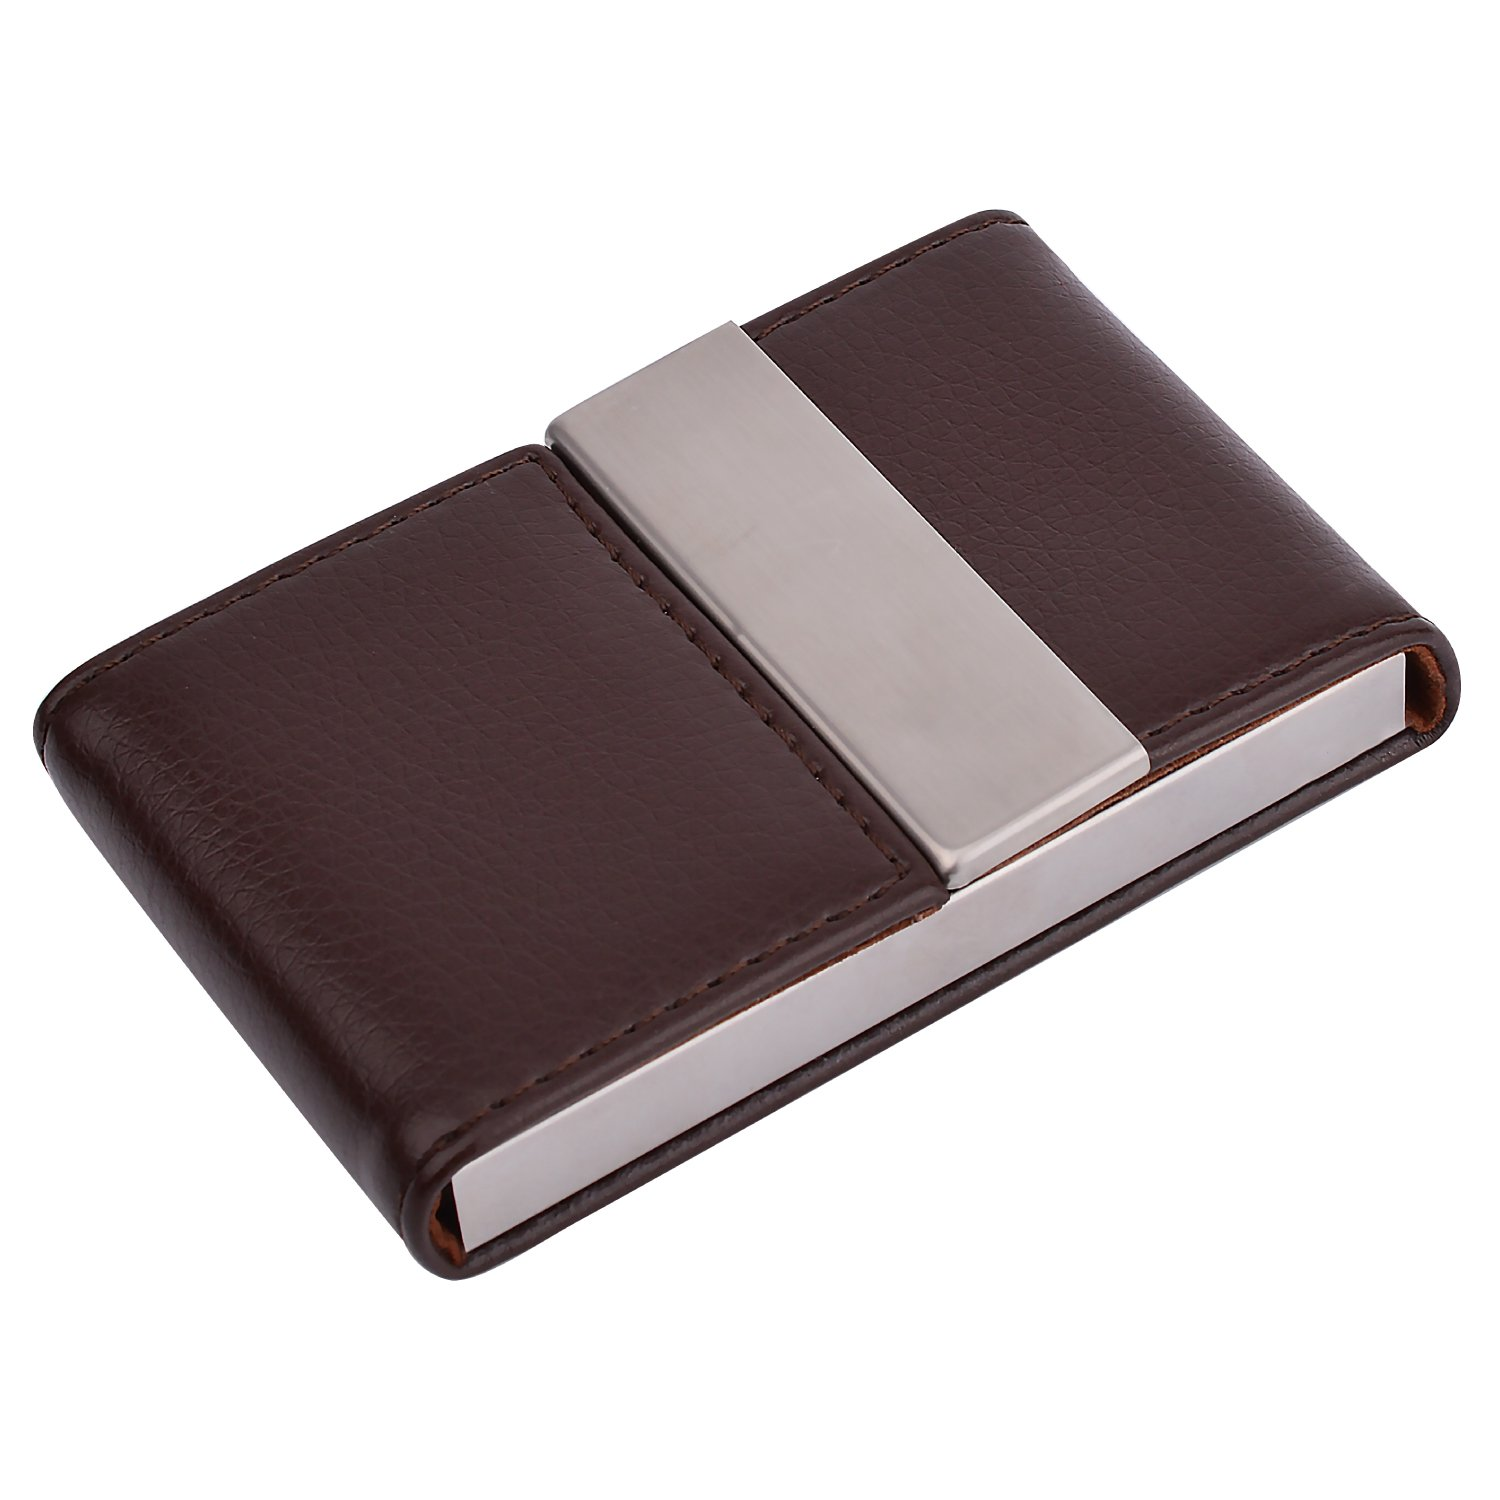 20f22129ffb9 MaxGear PU Leather Business Card Holder Name Card Holder Case Credit Card  Case with Magnetic Shut